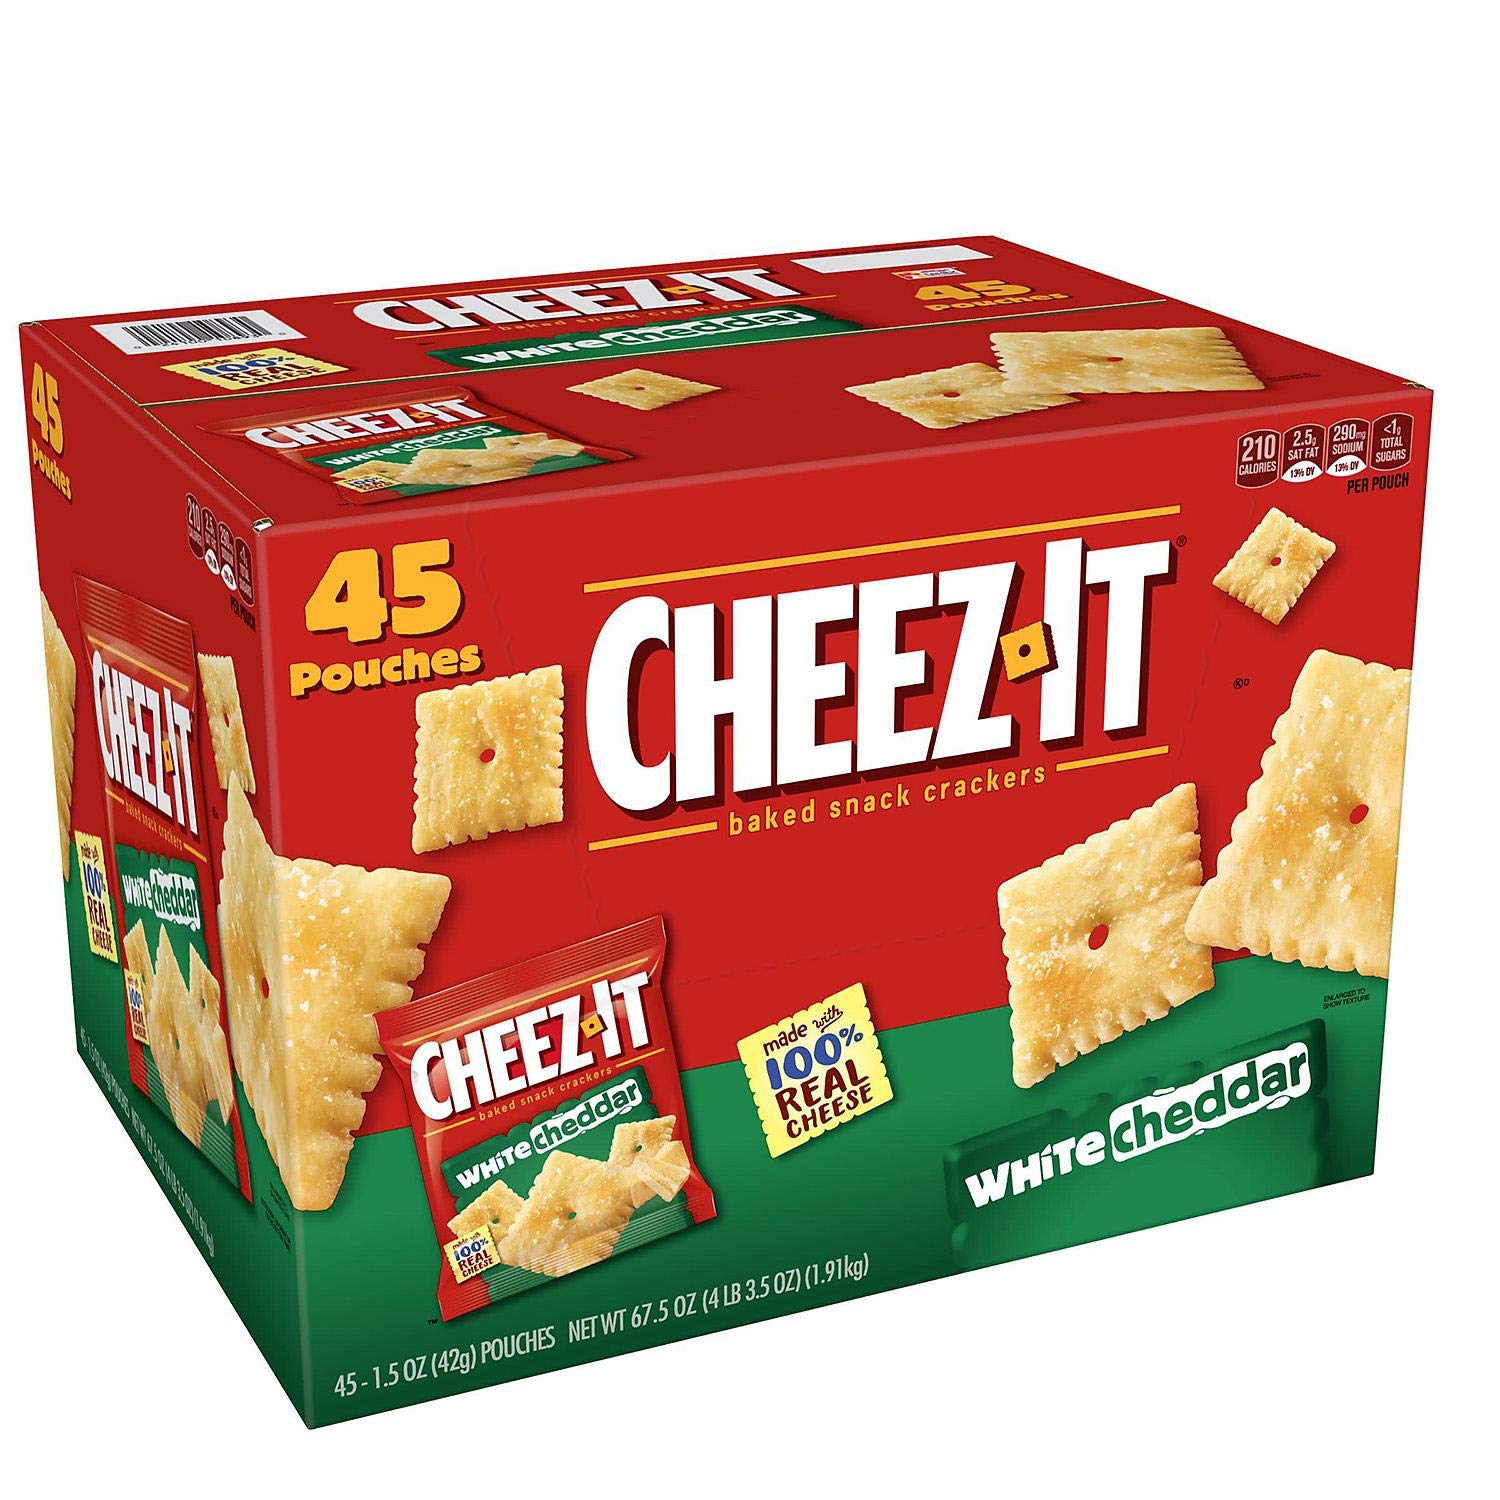 Cheez-It White Cheddar Crackers Snack Packs (1.5 oz. pouches, 45 ct.) by Cheez-It